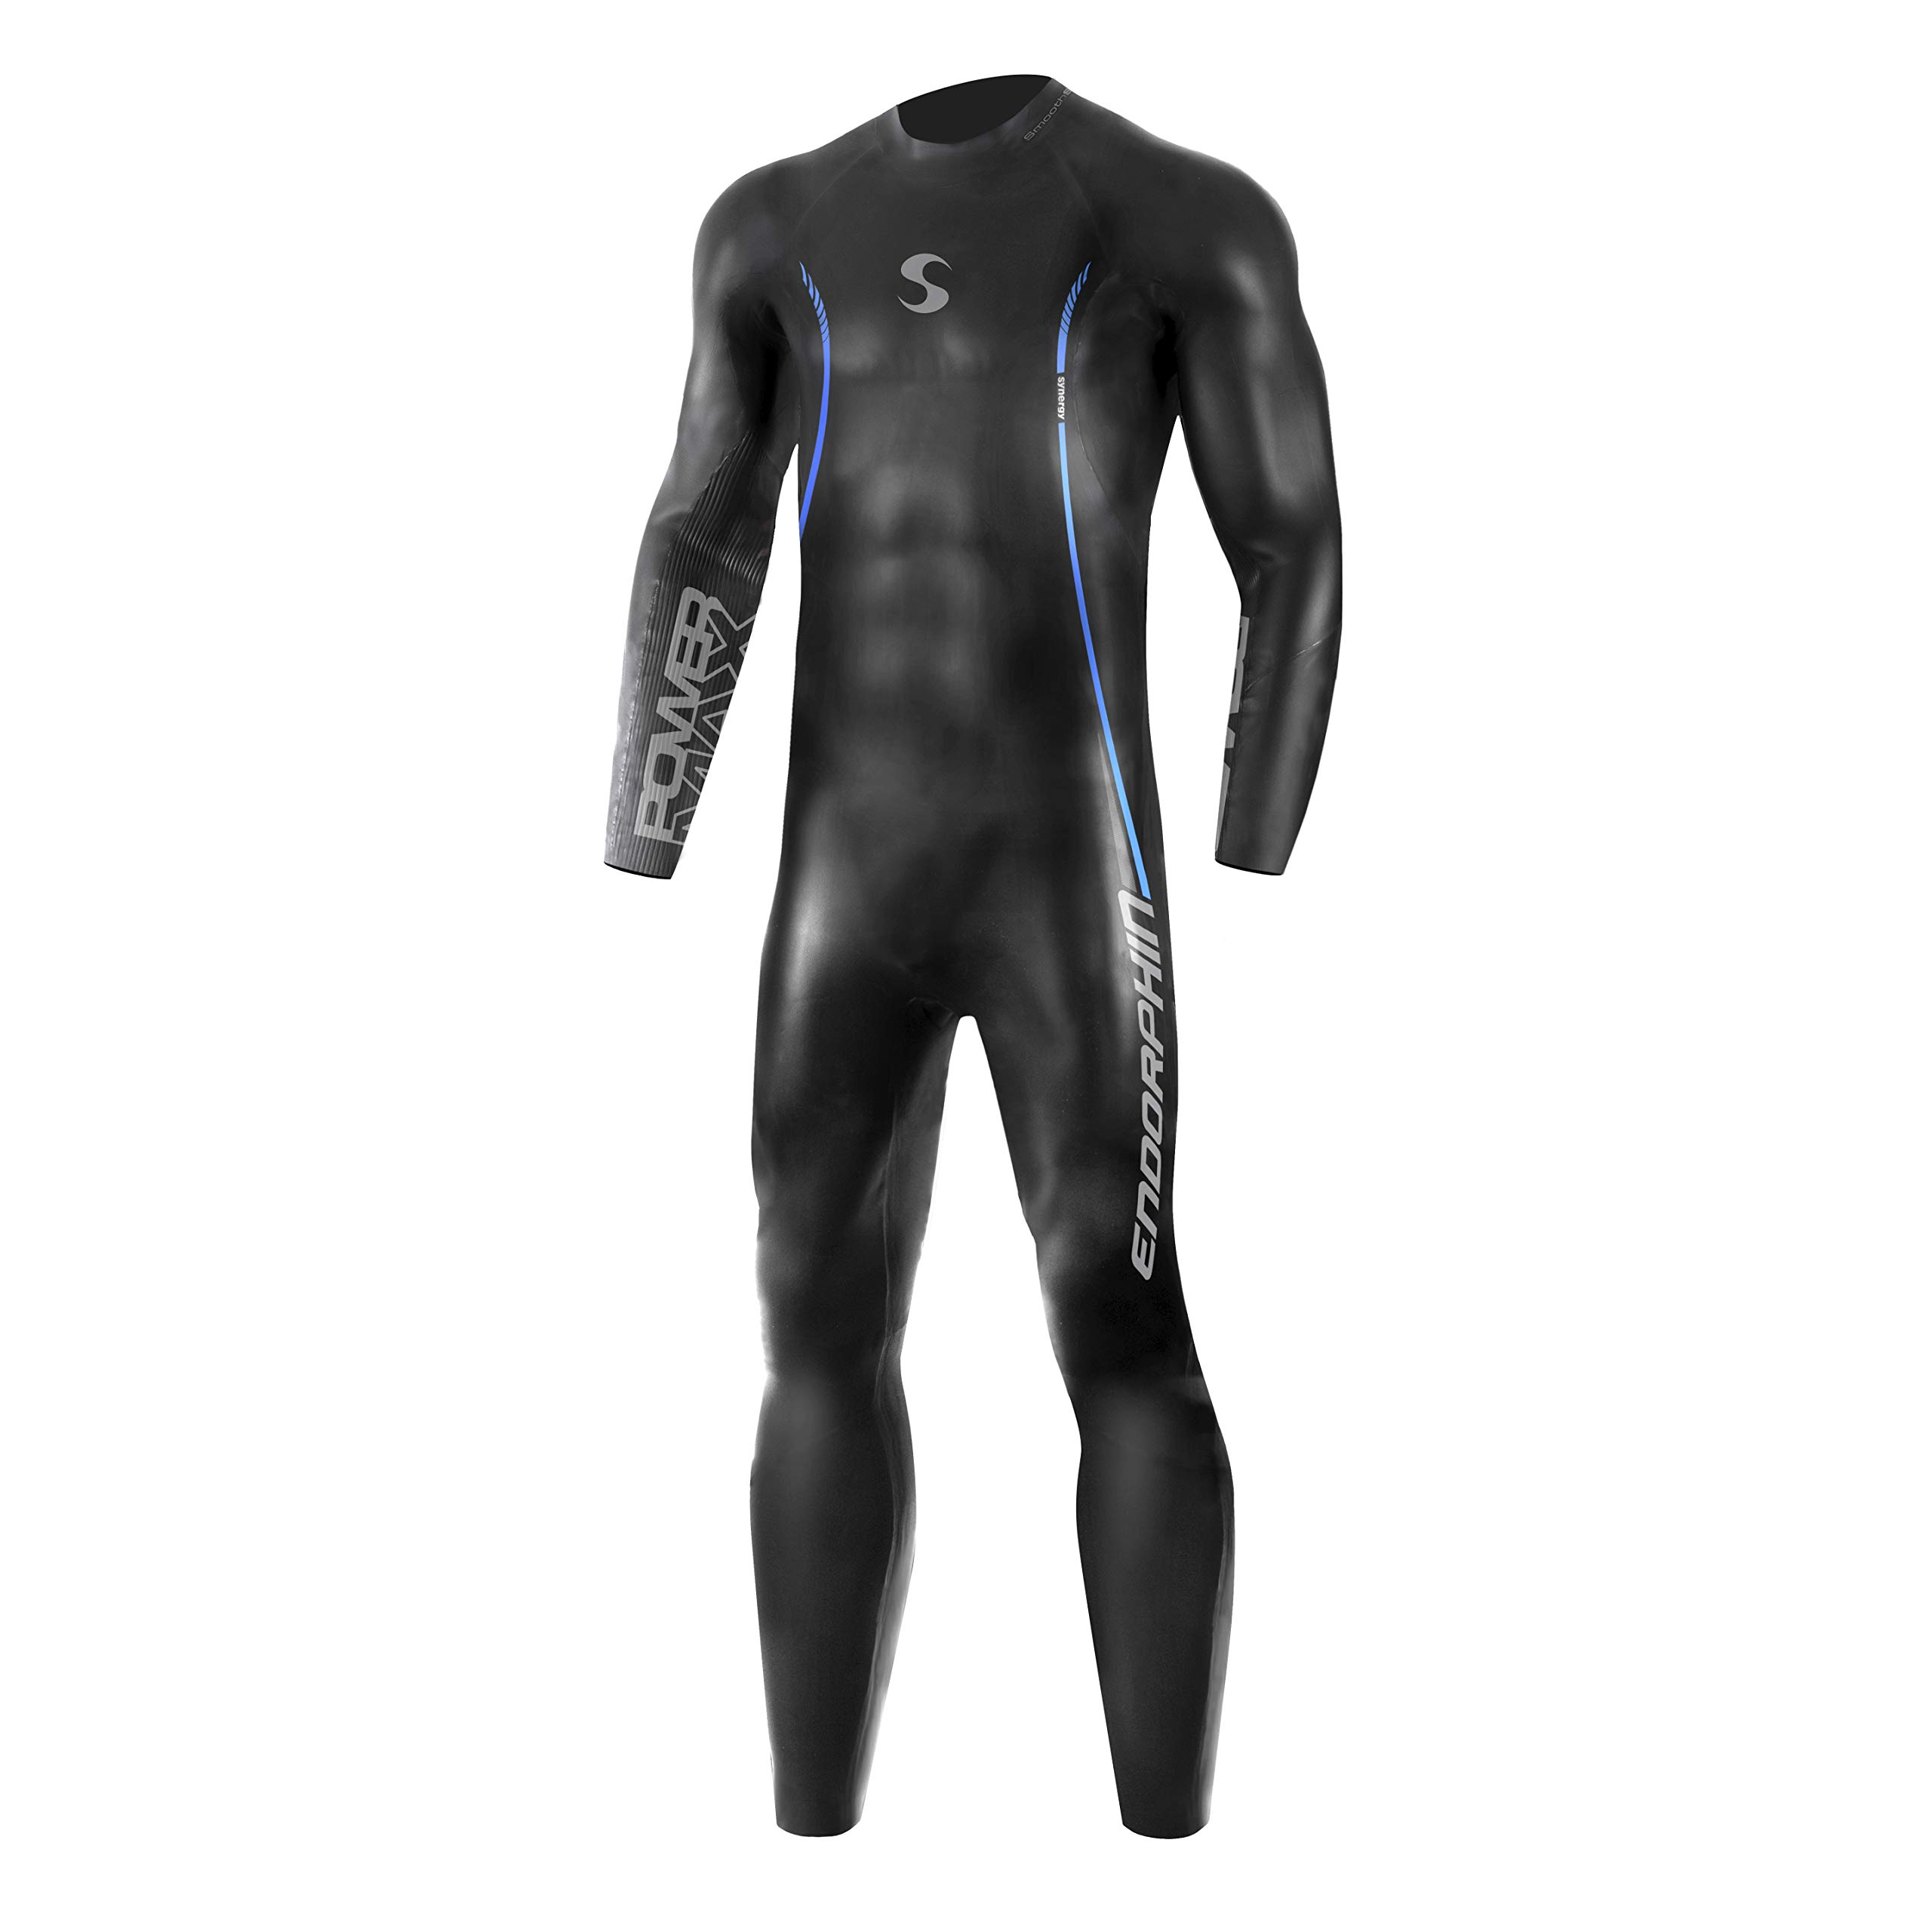 Synergy Endorphin Men's Full Sleeve Triathlon Wetsuit (M2) by Synergy